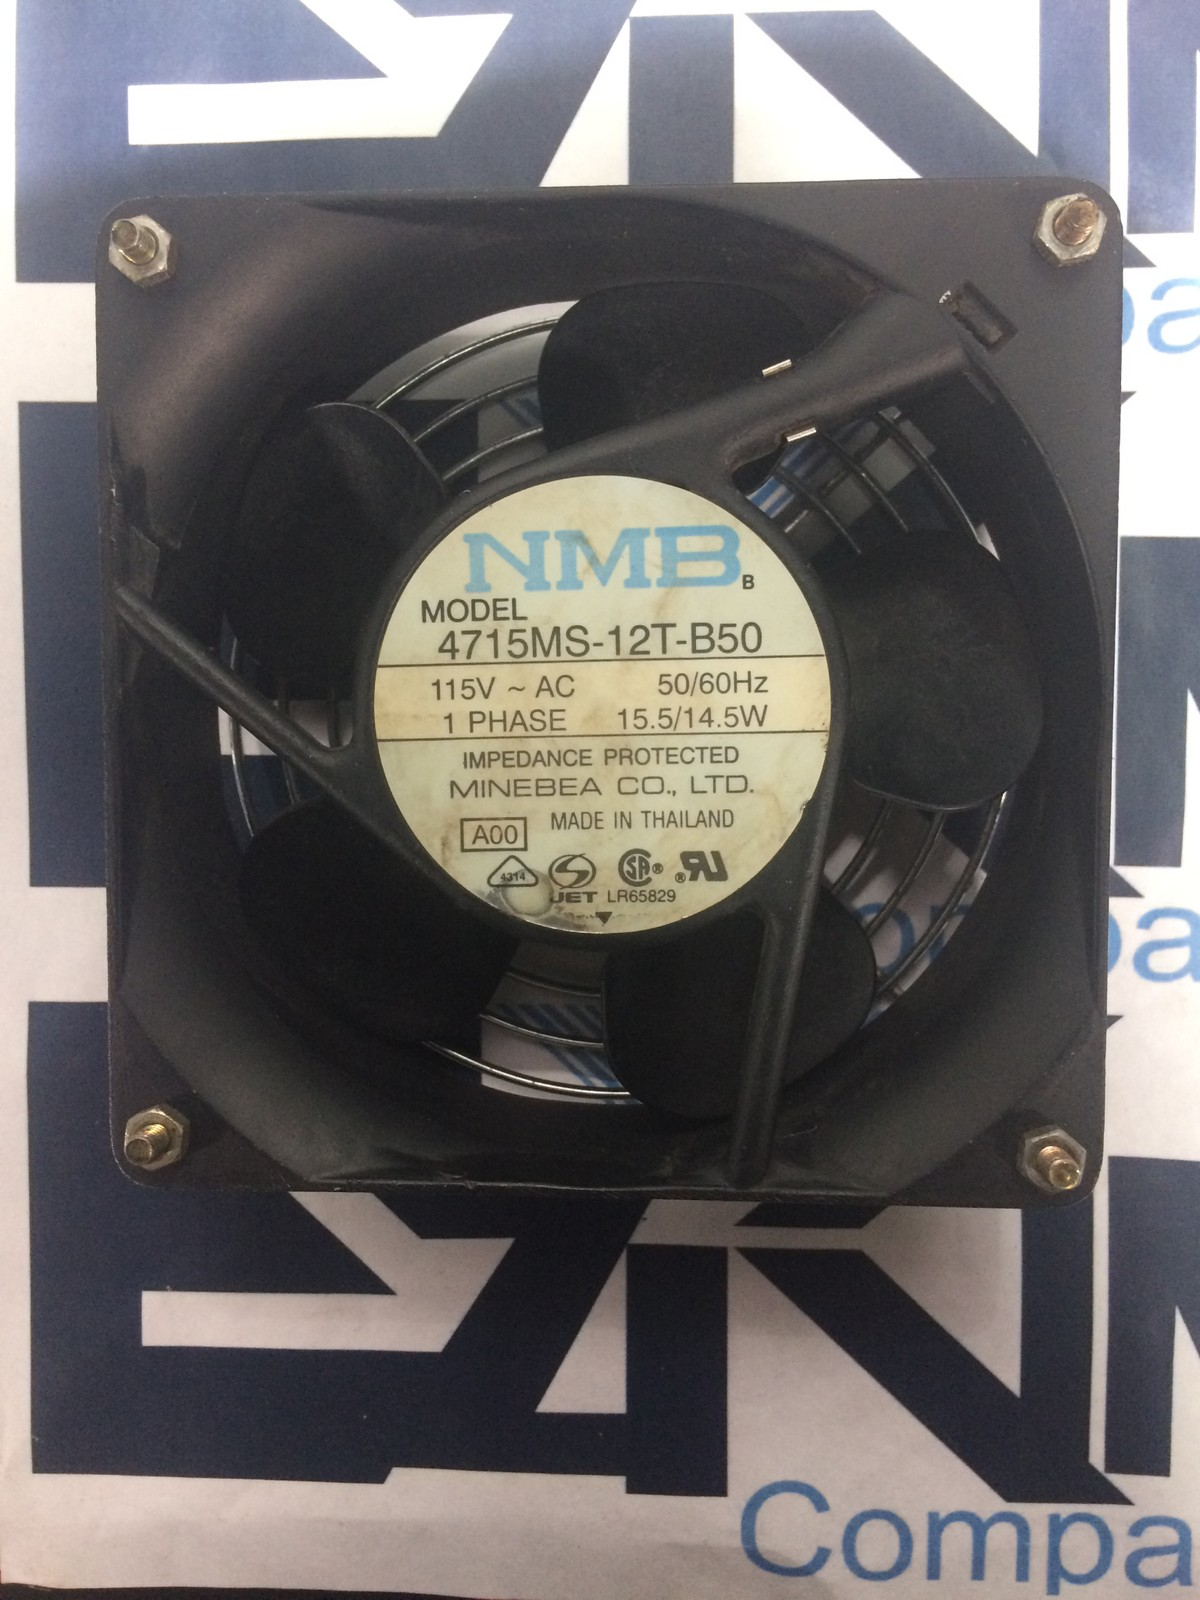 NMB 4715MS-12T-B50 115V 50/60HZ 1 PHASE 15.5/14.5W FAN